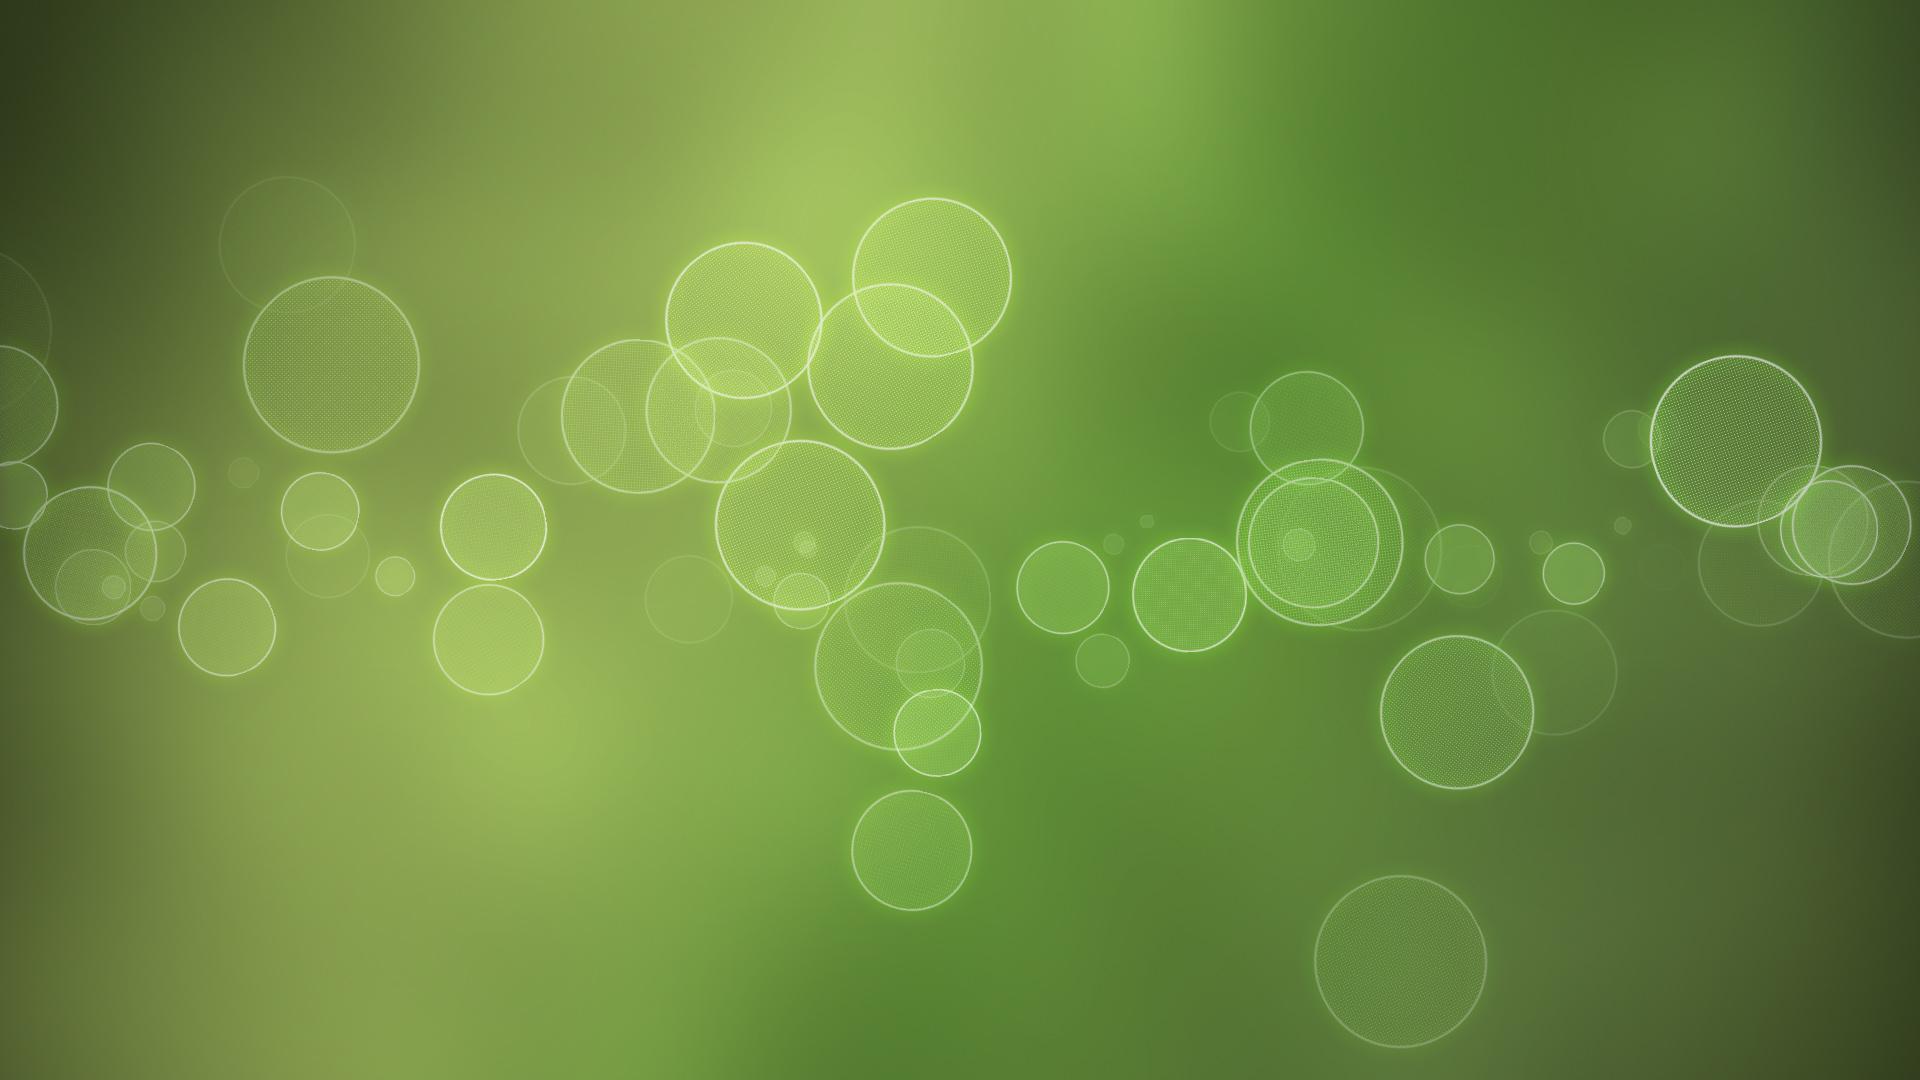 Light green background wallpaper 1297271 for Creative simple